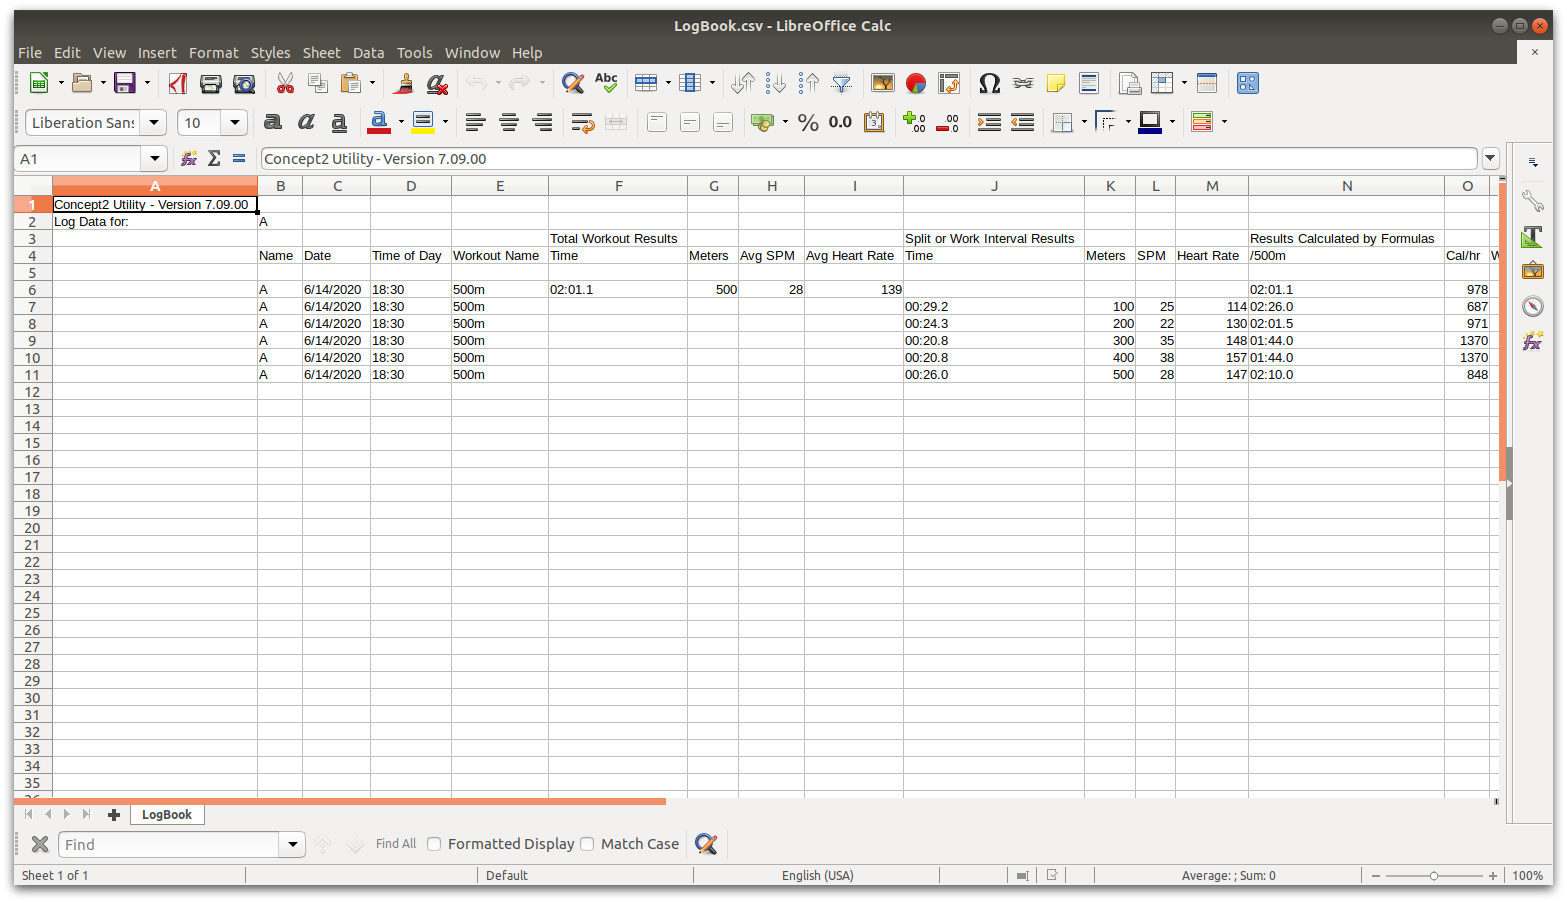 The saved data is just a simple CSV file with lap and total data.